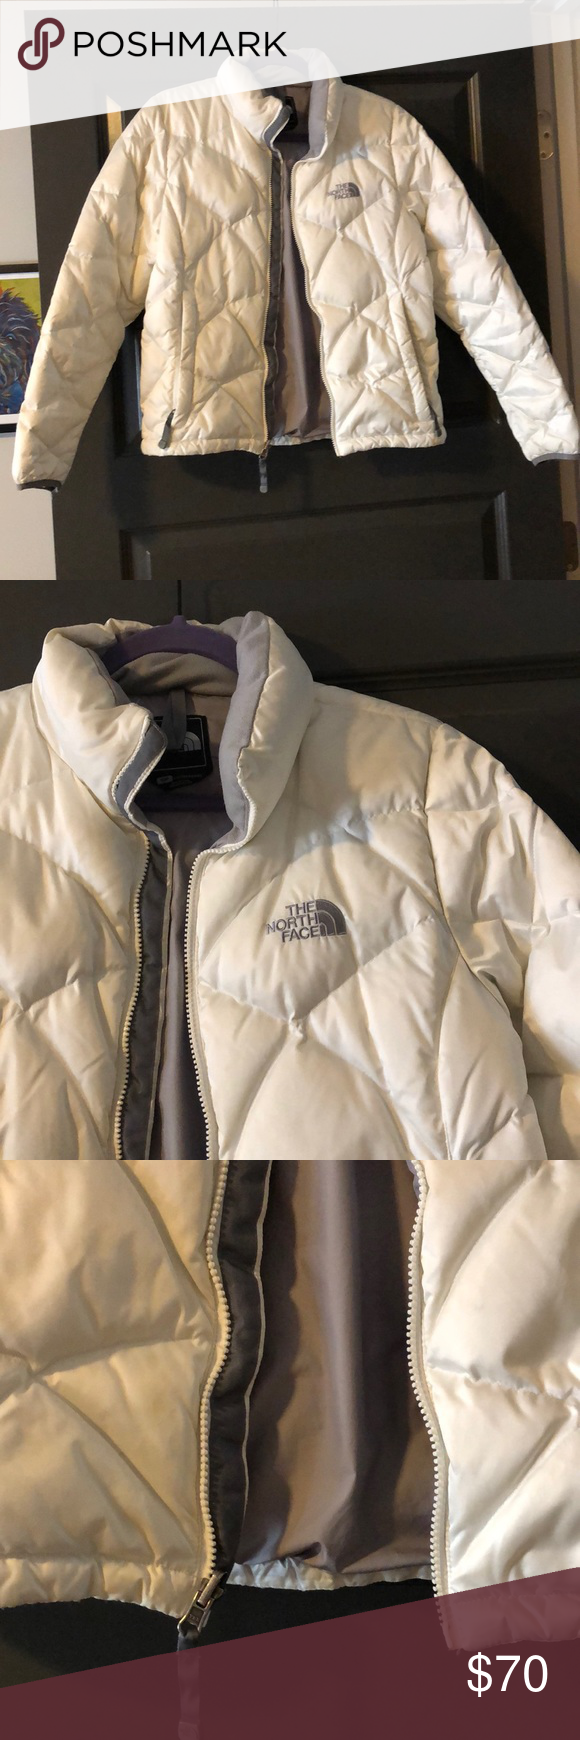 North Face Off White Down Puffer Coat Down Puffer Coat Puffer Coat North Face Jacket [ 1740 x 580 Pixel ]